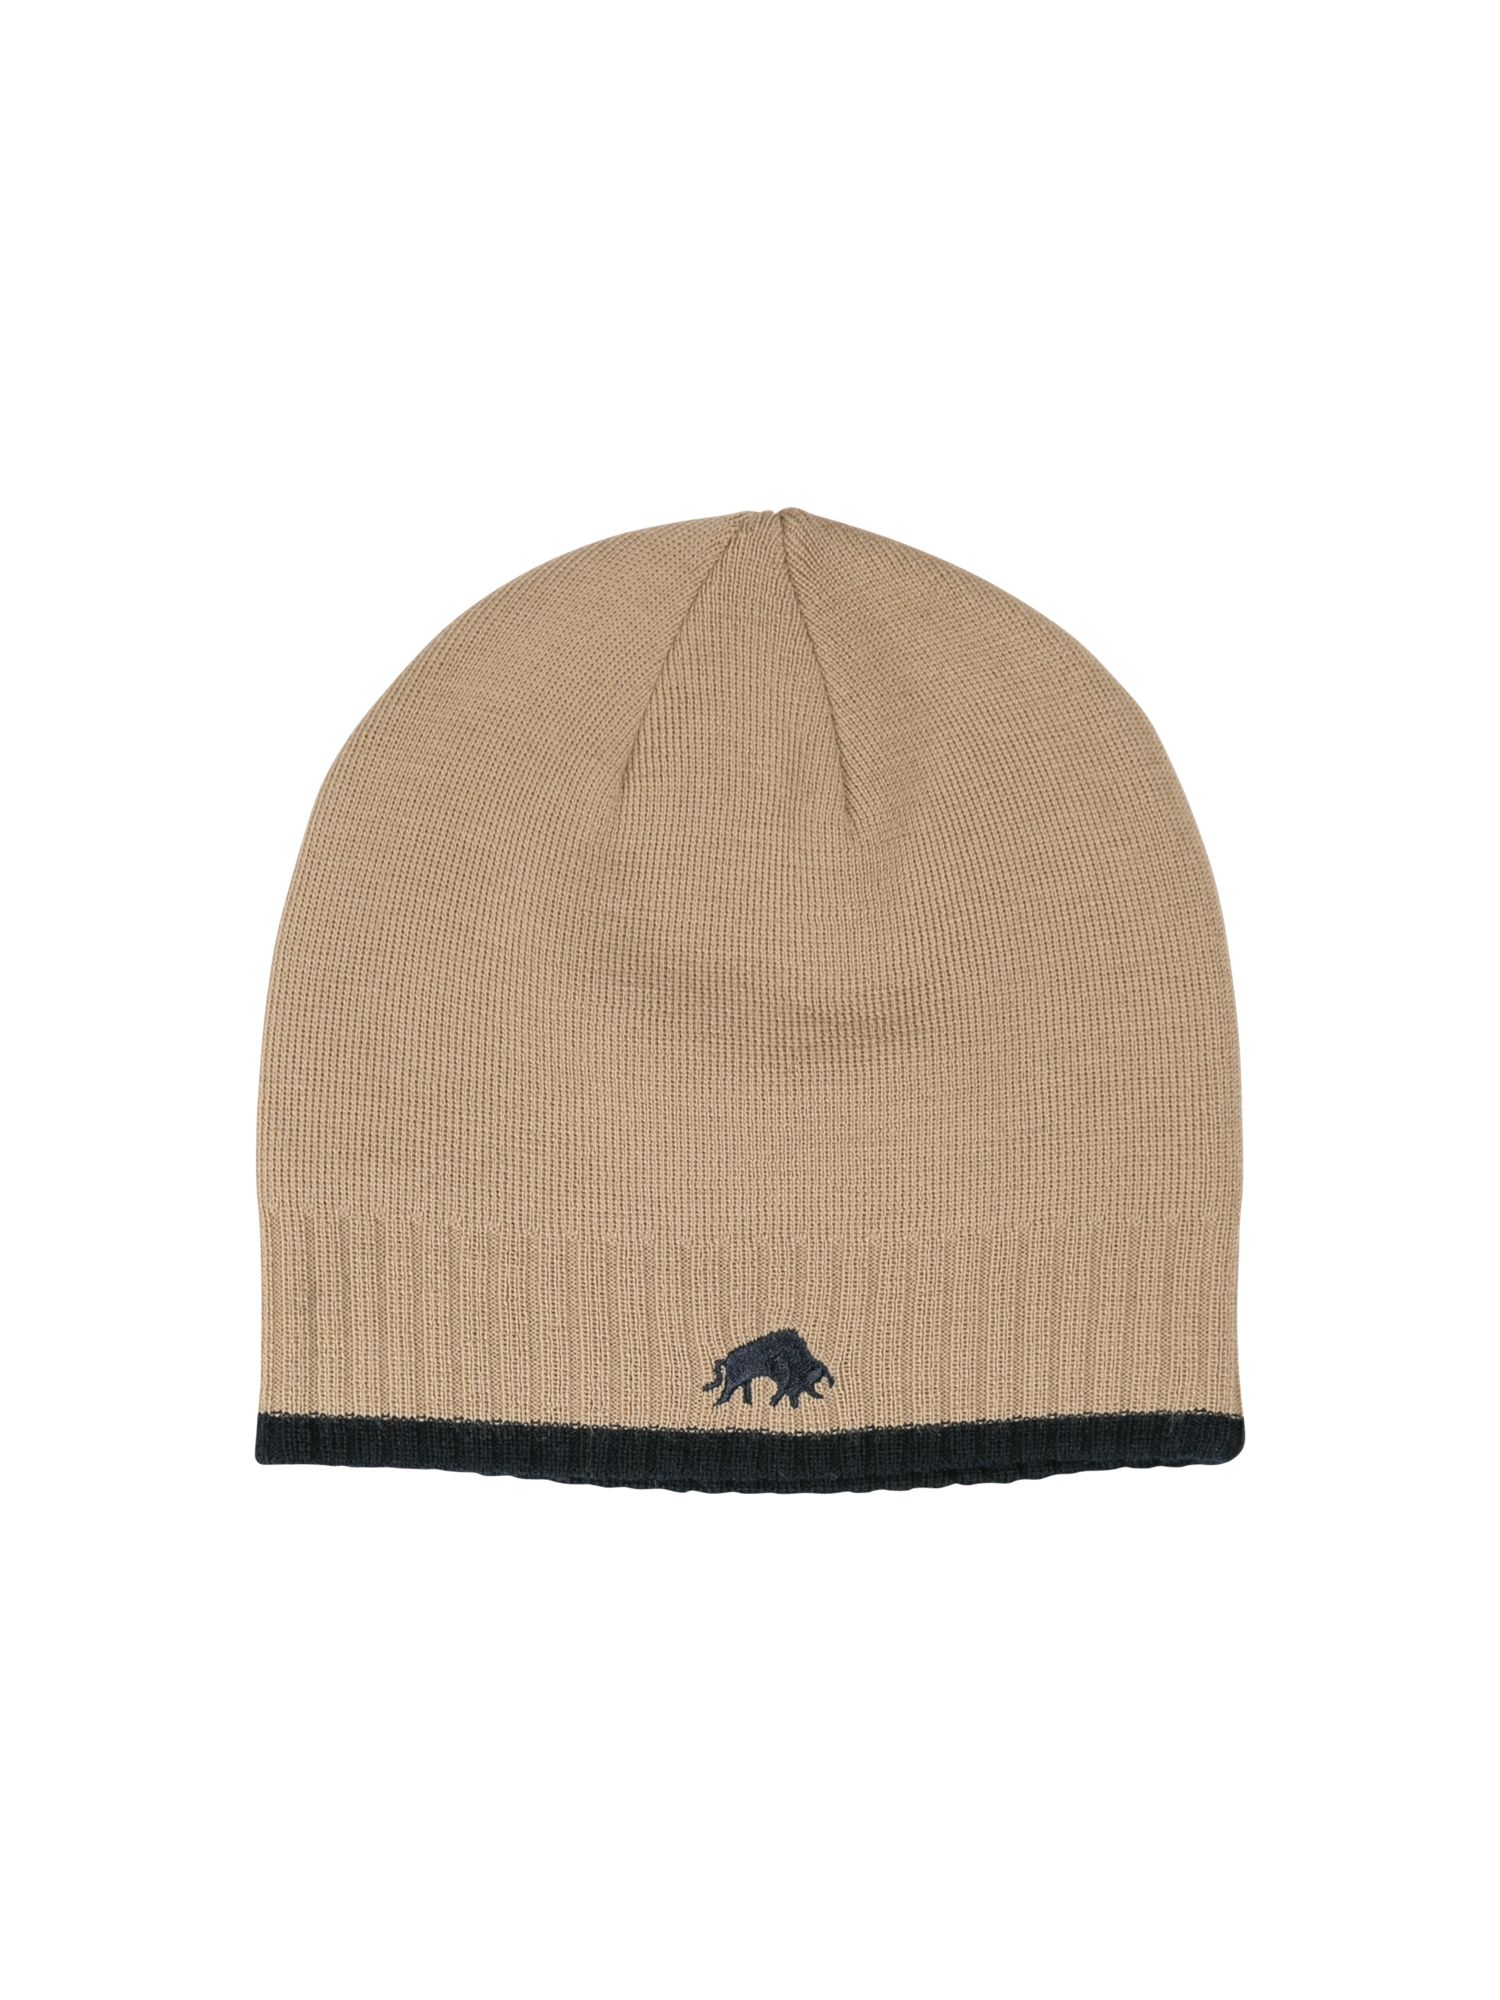 Rb wool hat oatmeal